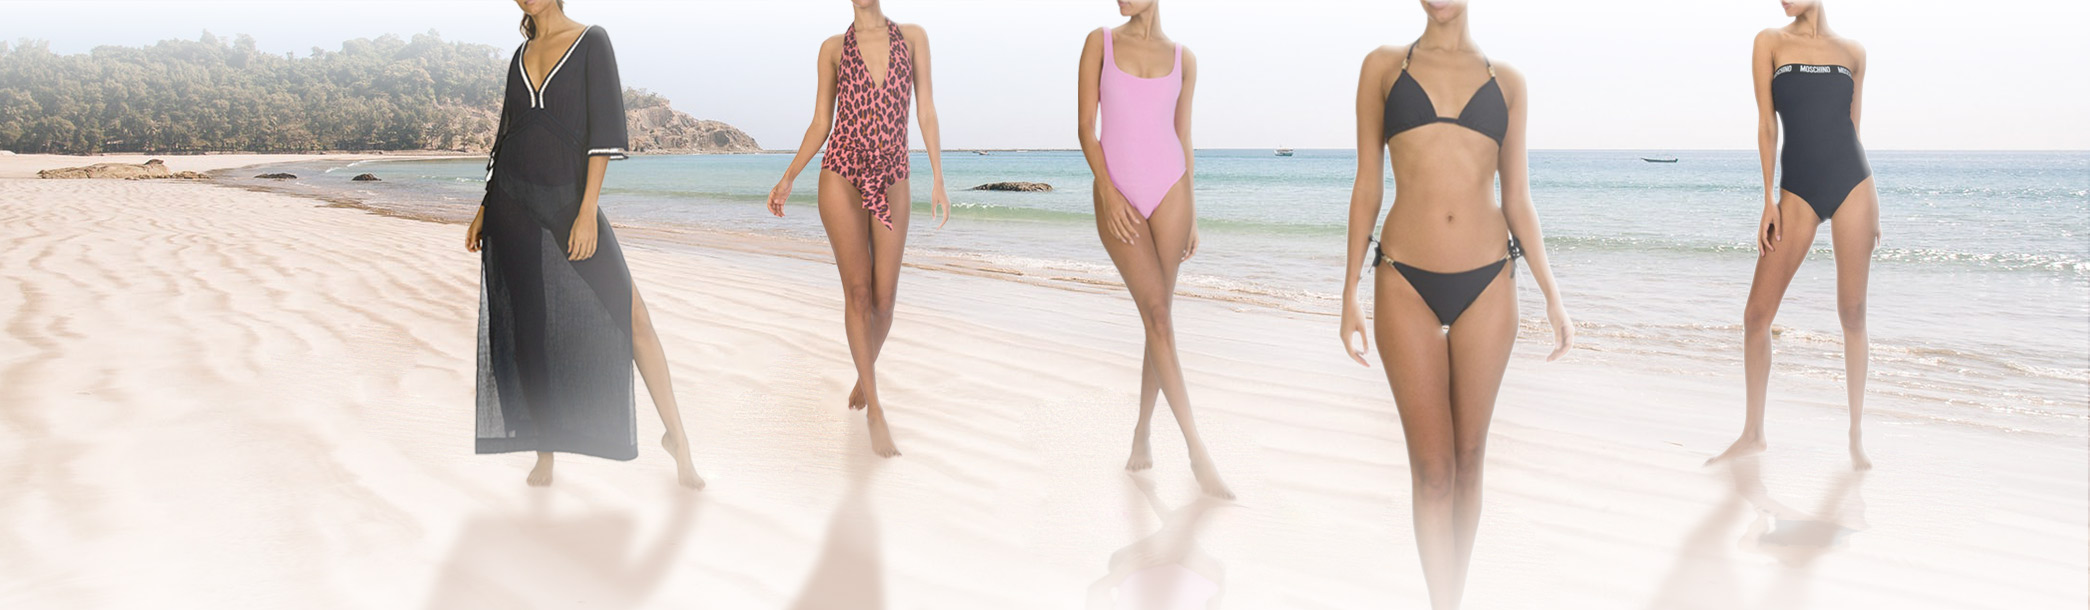 How to look your best on the beach